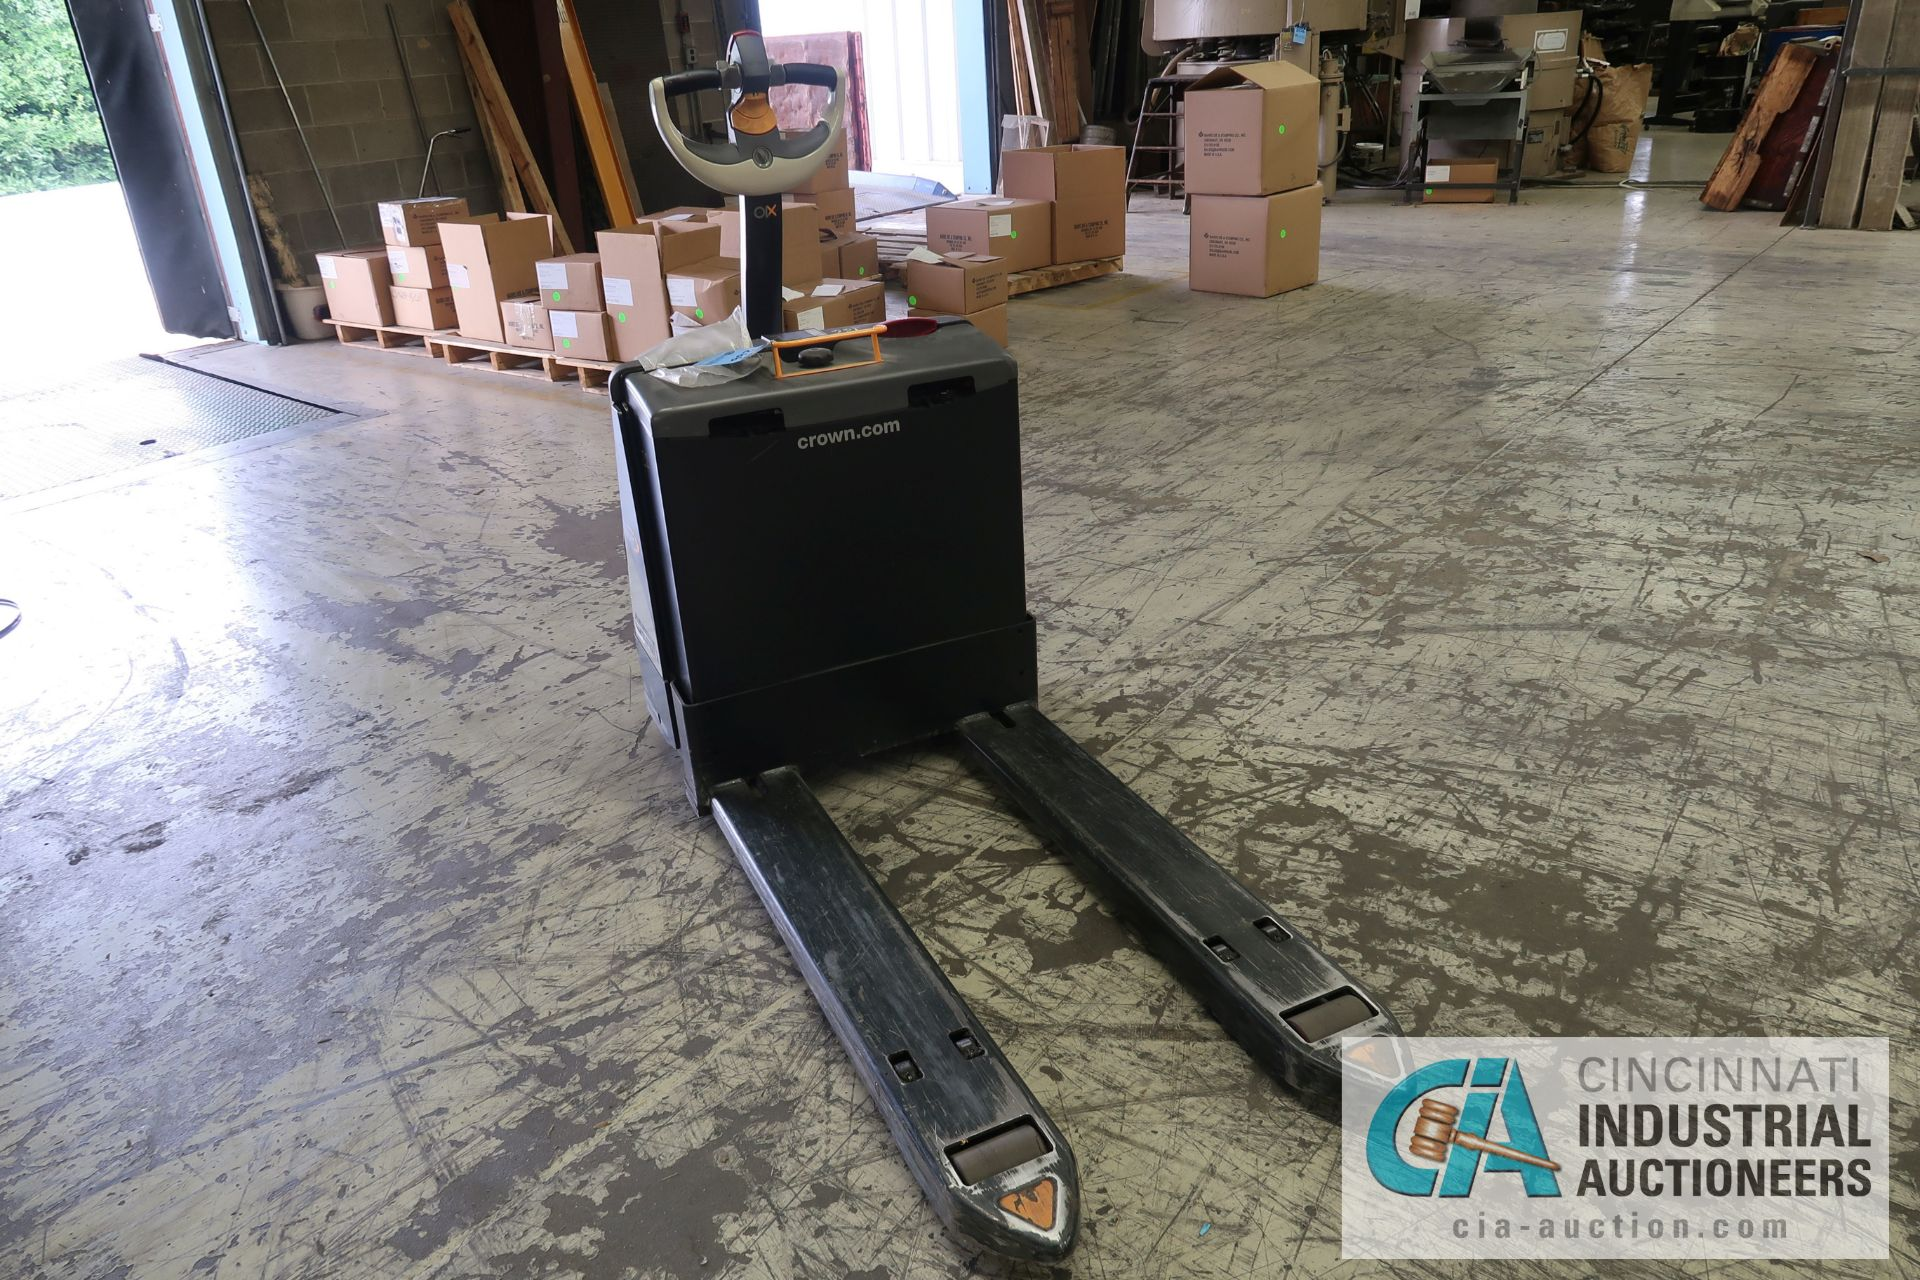 2,000 LB. CROWN MODEL WP3035-45 ELECTRIC WALK BEHIND PALLET TRUCK; S/N 7A291635, WITH BUILT IN - Image 2 of 6